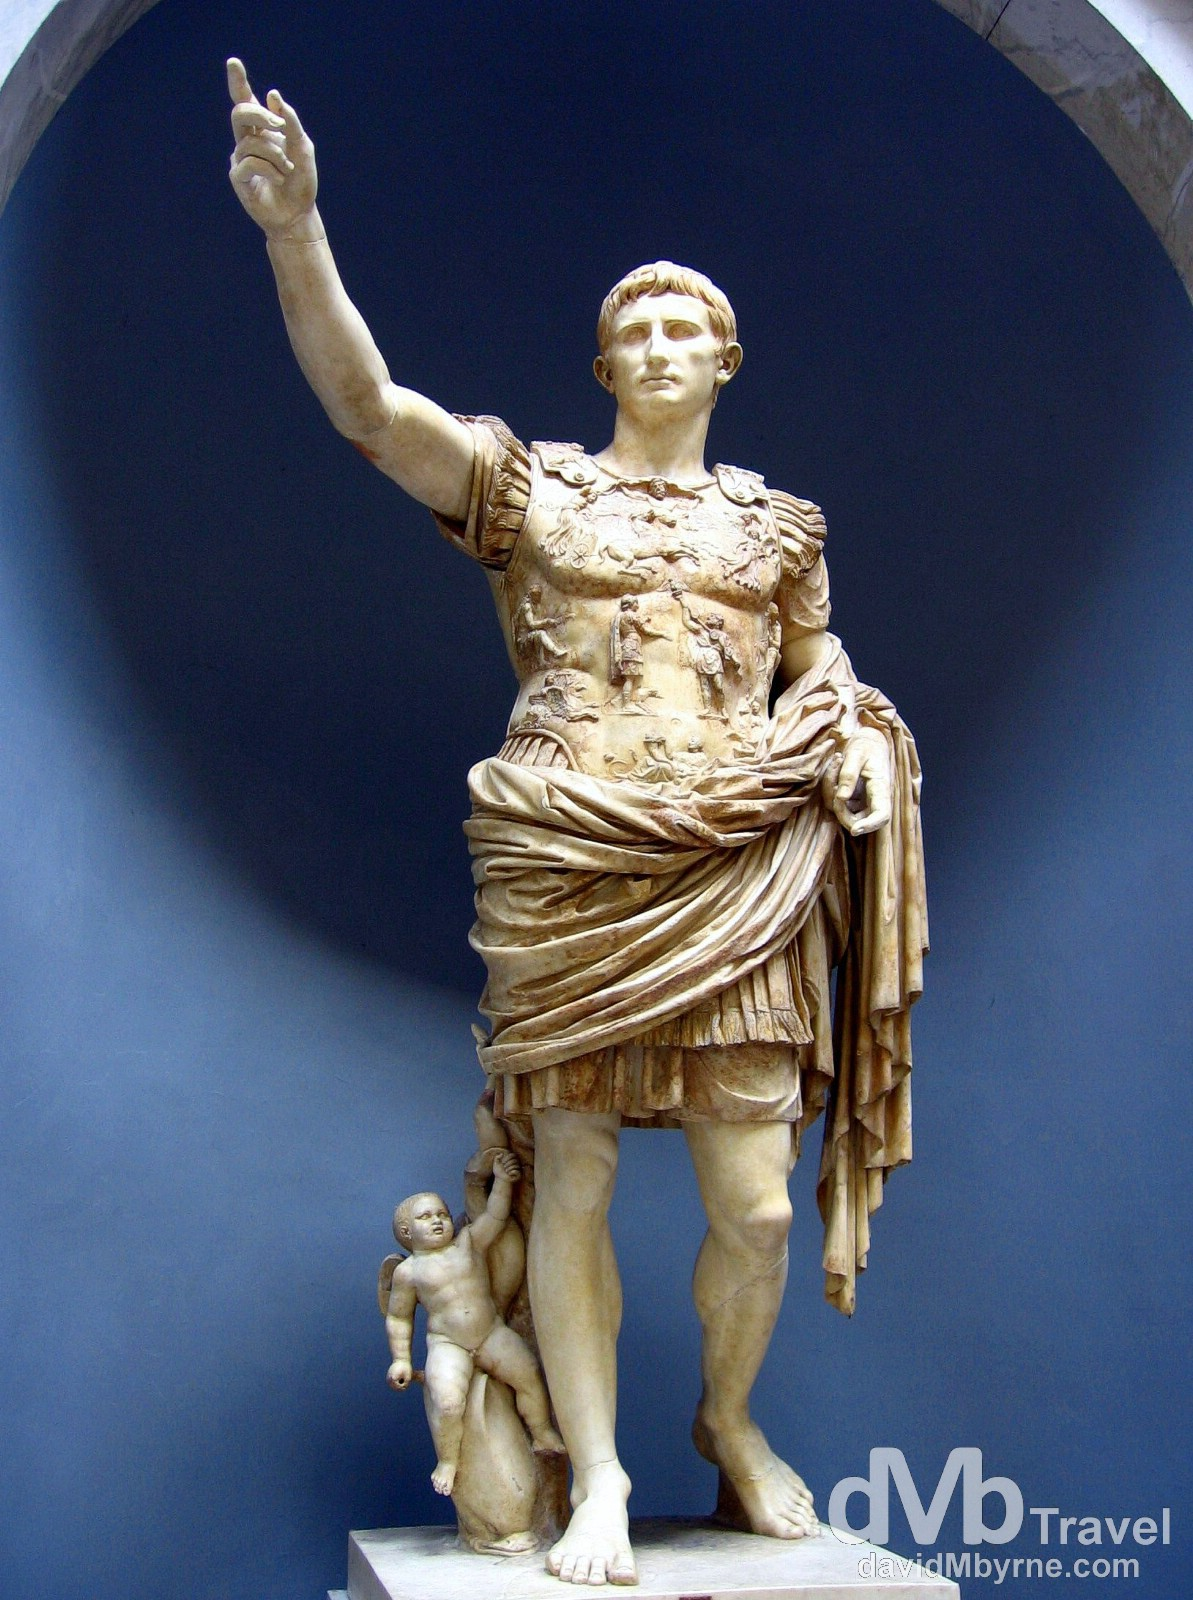 Augustus statue in the Vatican Museums, Vatican City. September 3rd, 2007.